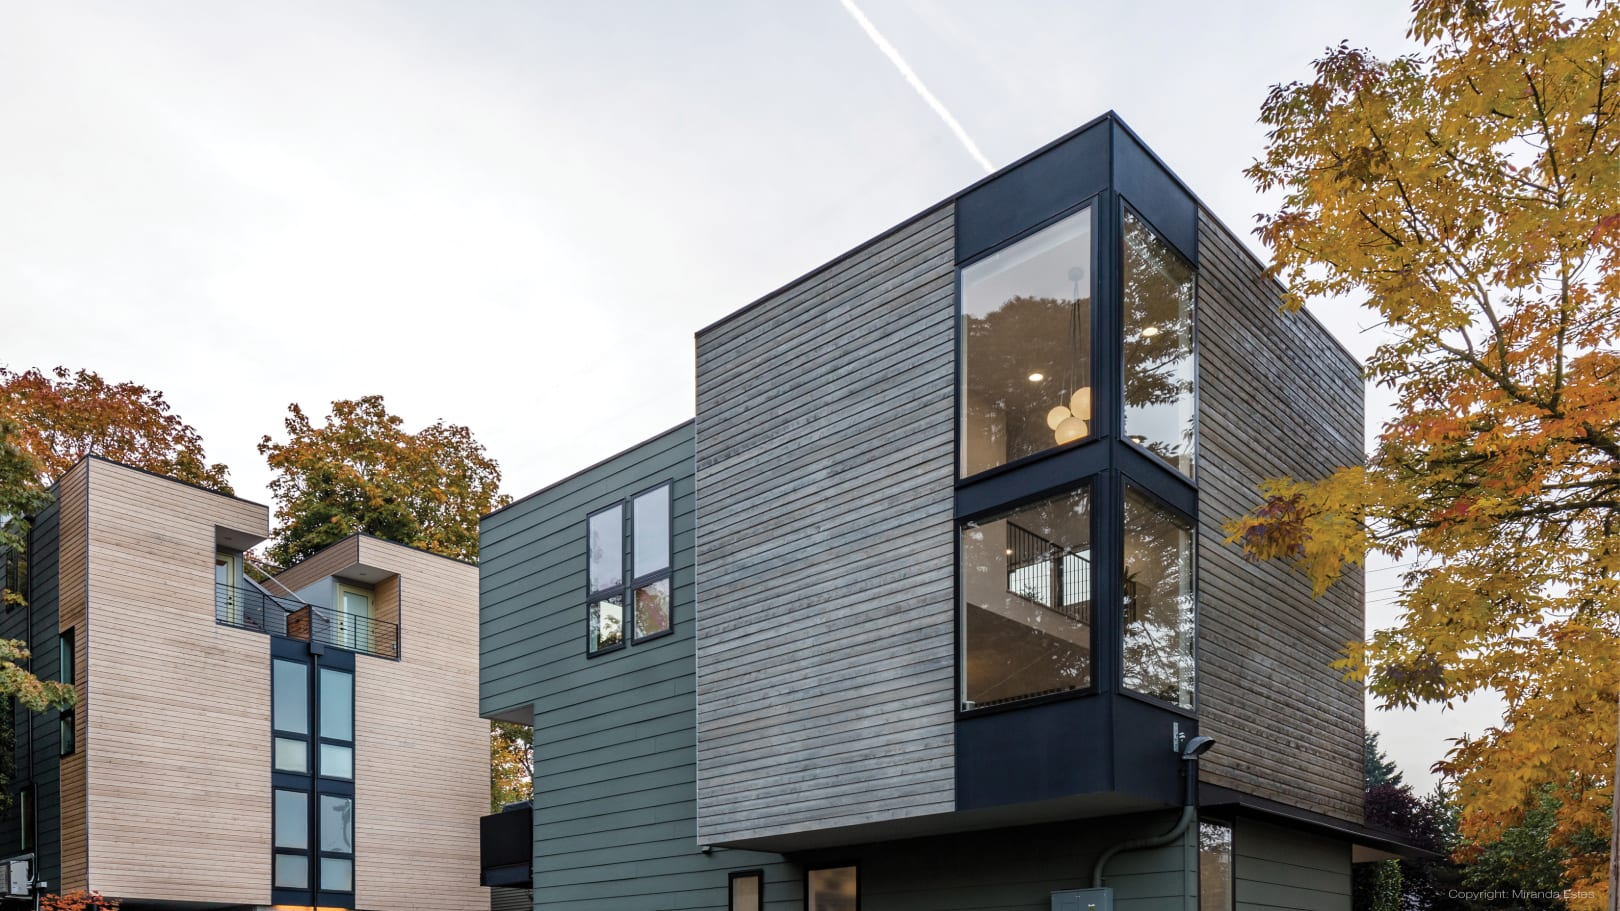 Making sustainably designed housing affordable Tsuga townhomes set out to resolve the paradox of low cost and high quality, working to achieve sustainable design while balancing the construction cost proforma.